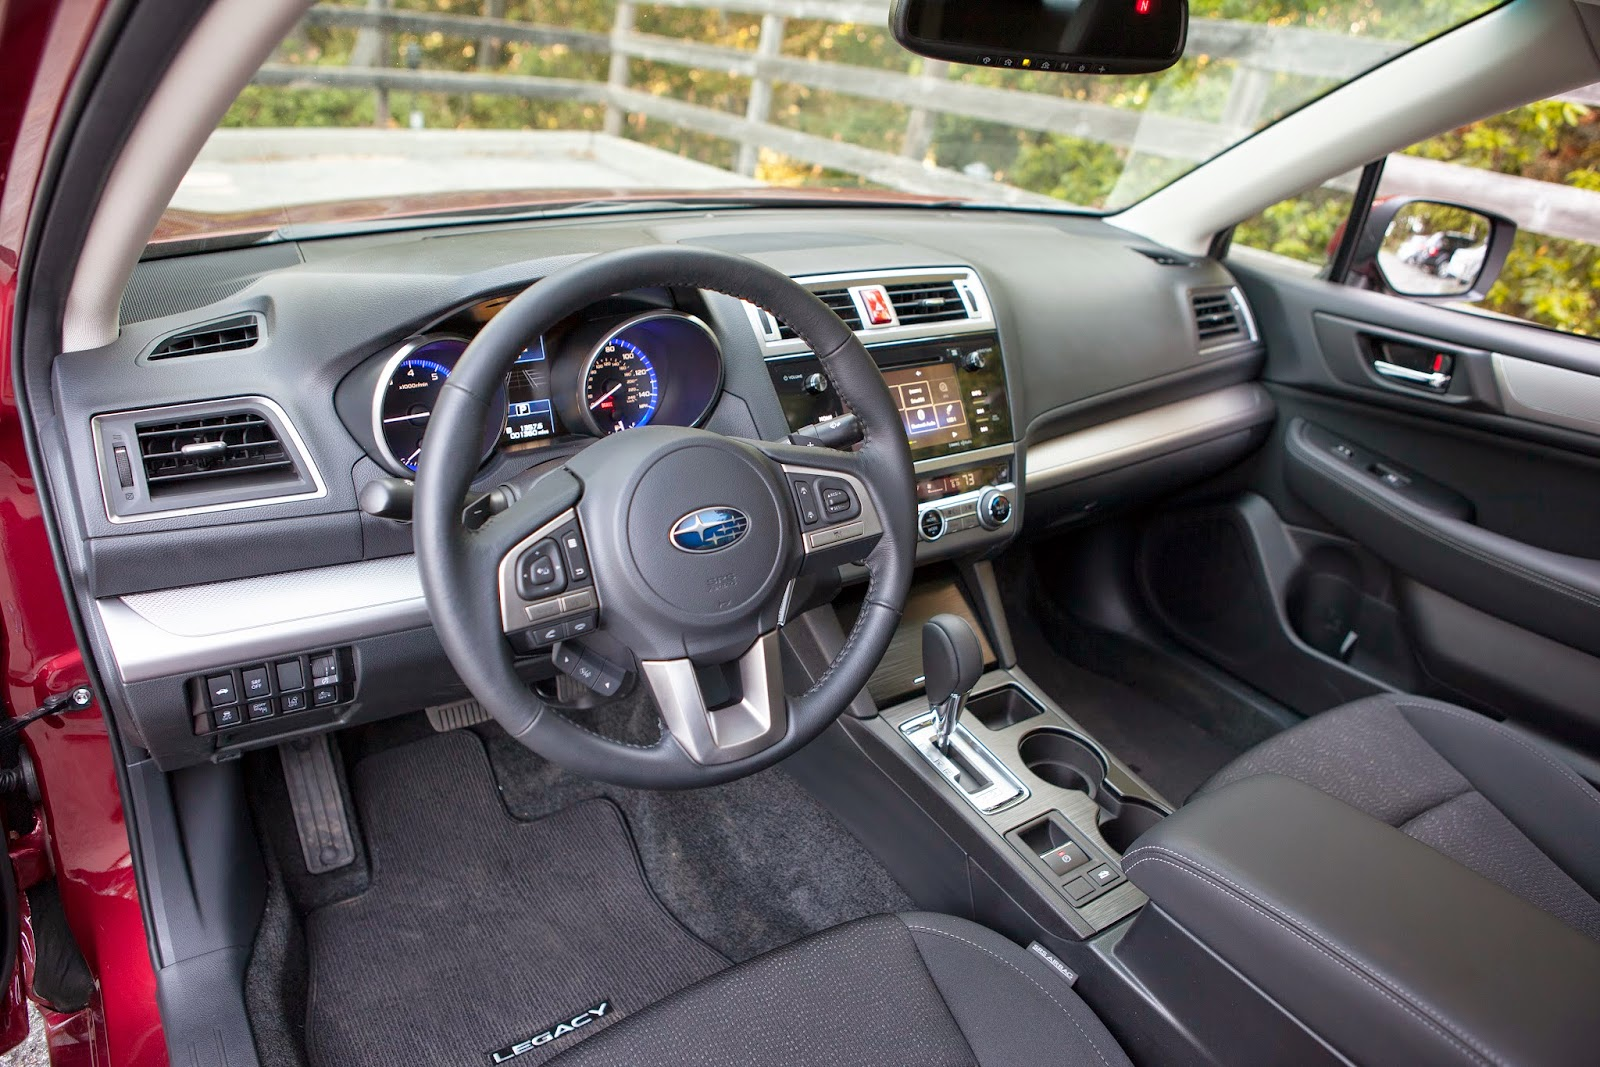 Interior view of 2015 Subaru Legacy